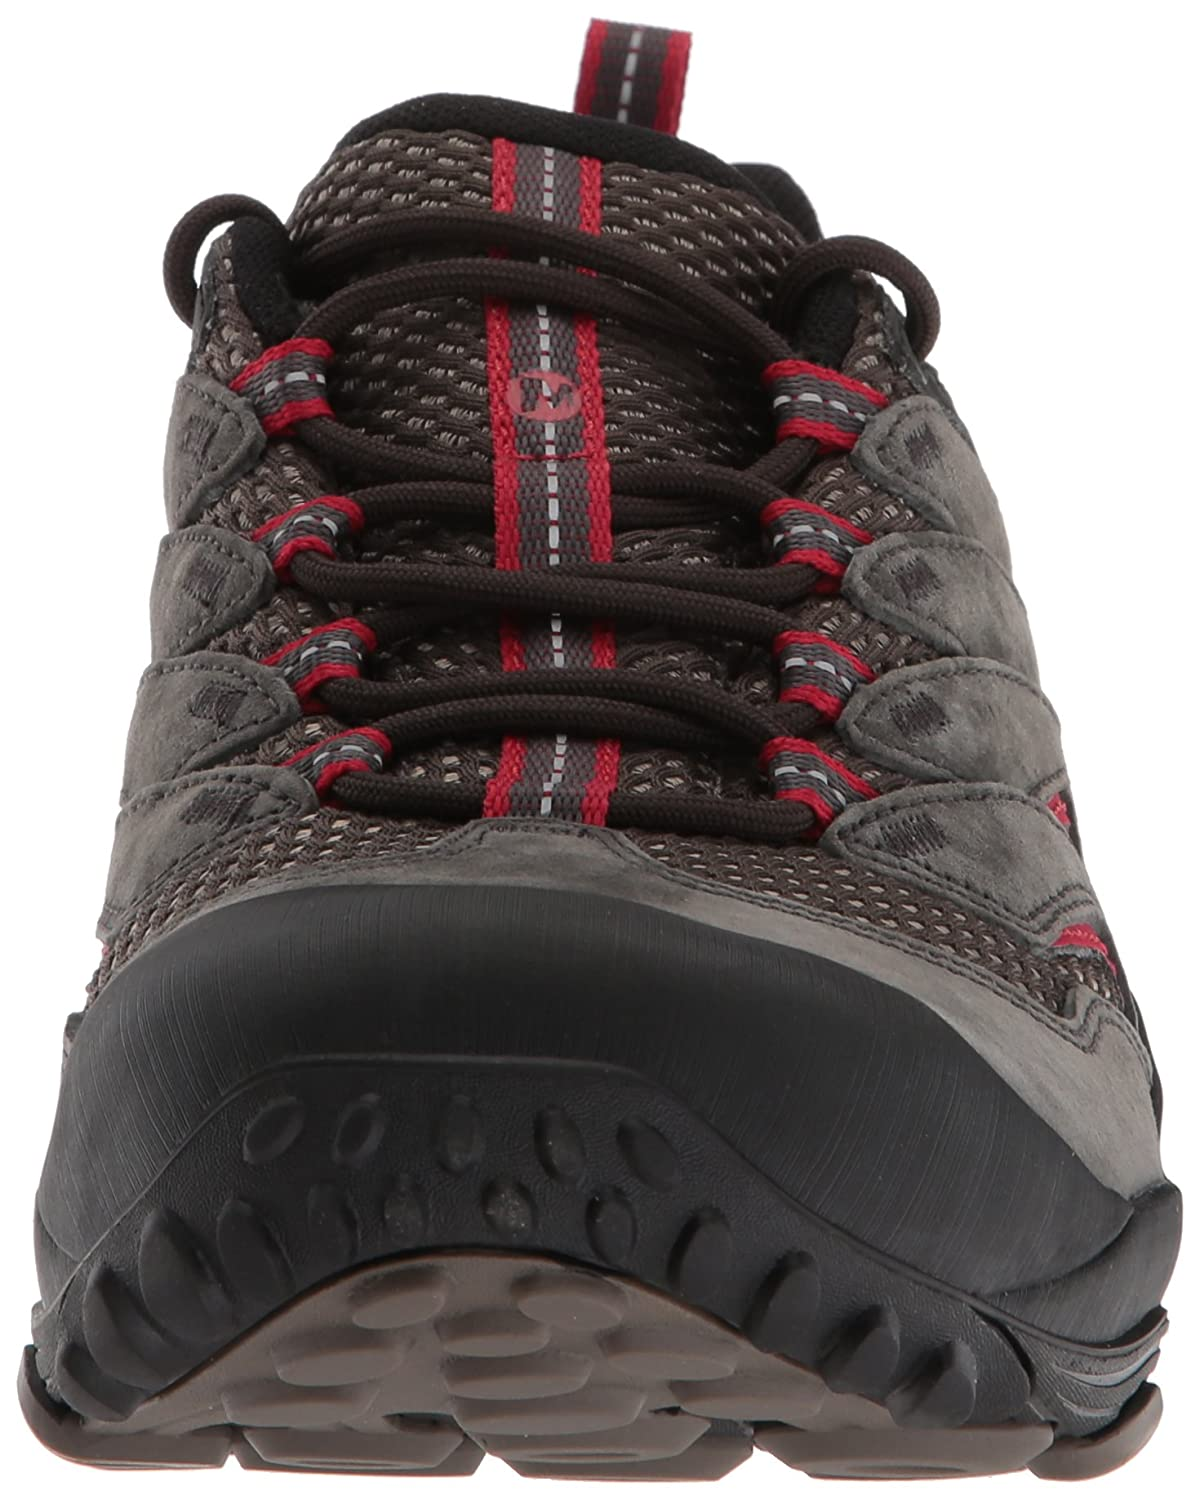 Merrell Women's Chameleon 7 D(M) Limit Hiking Boot B0716Z8T91 12 D(M) 7 US|Beluga 1bd7c4